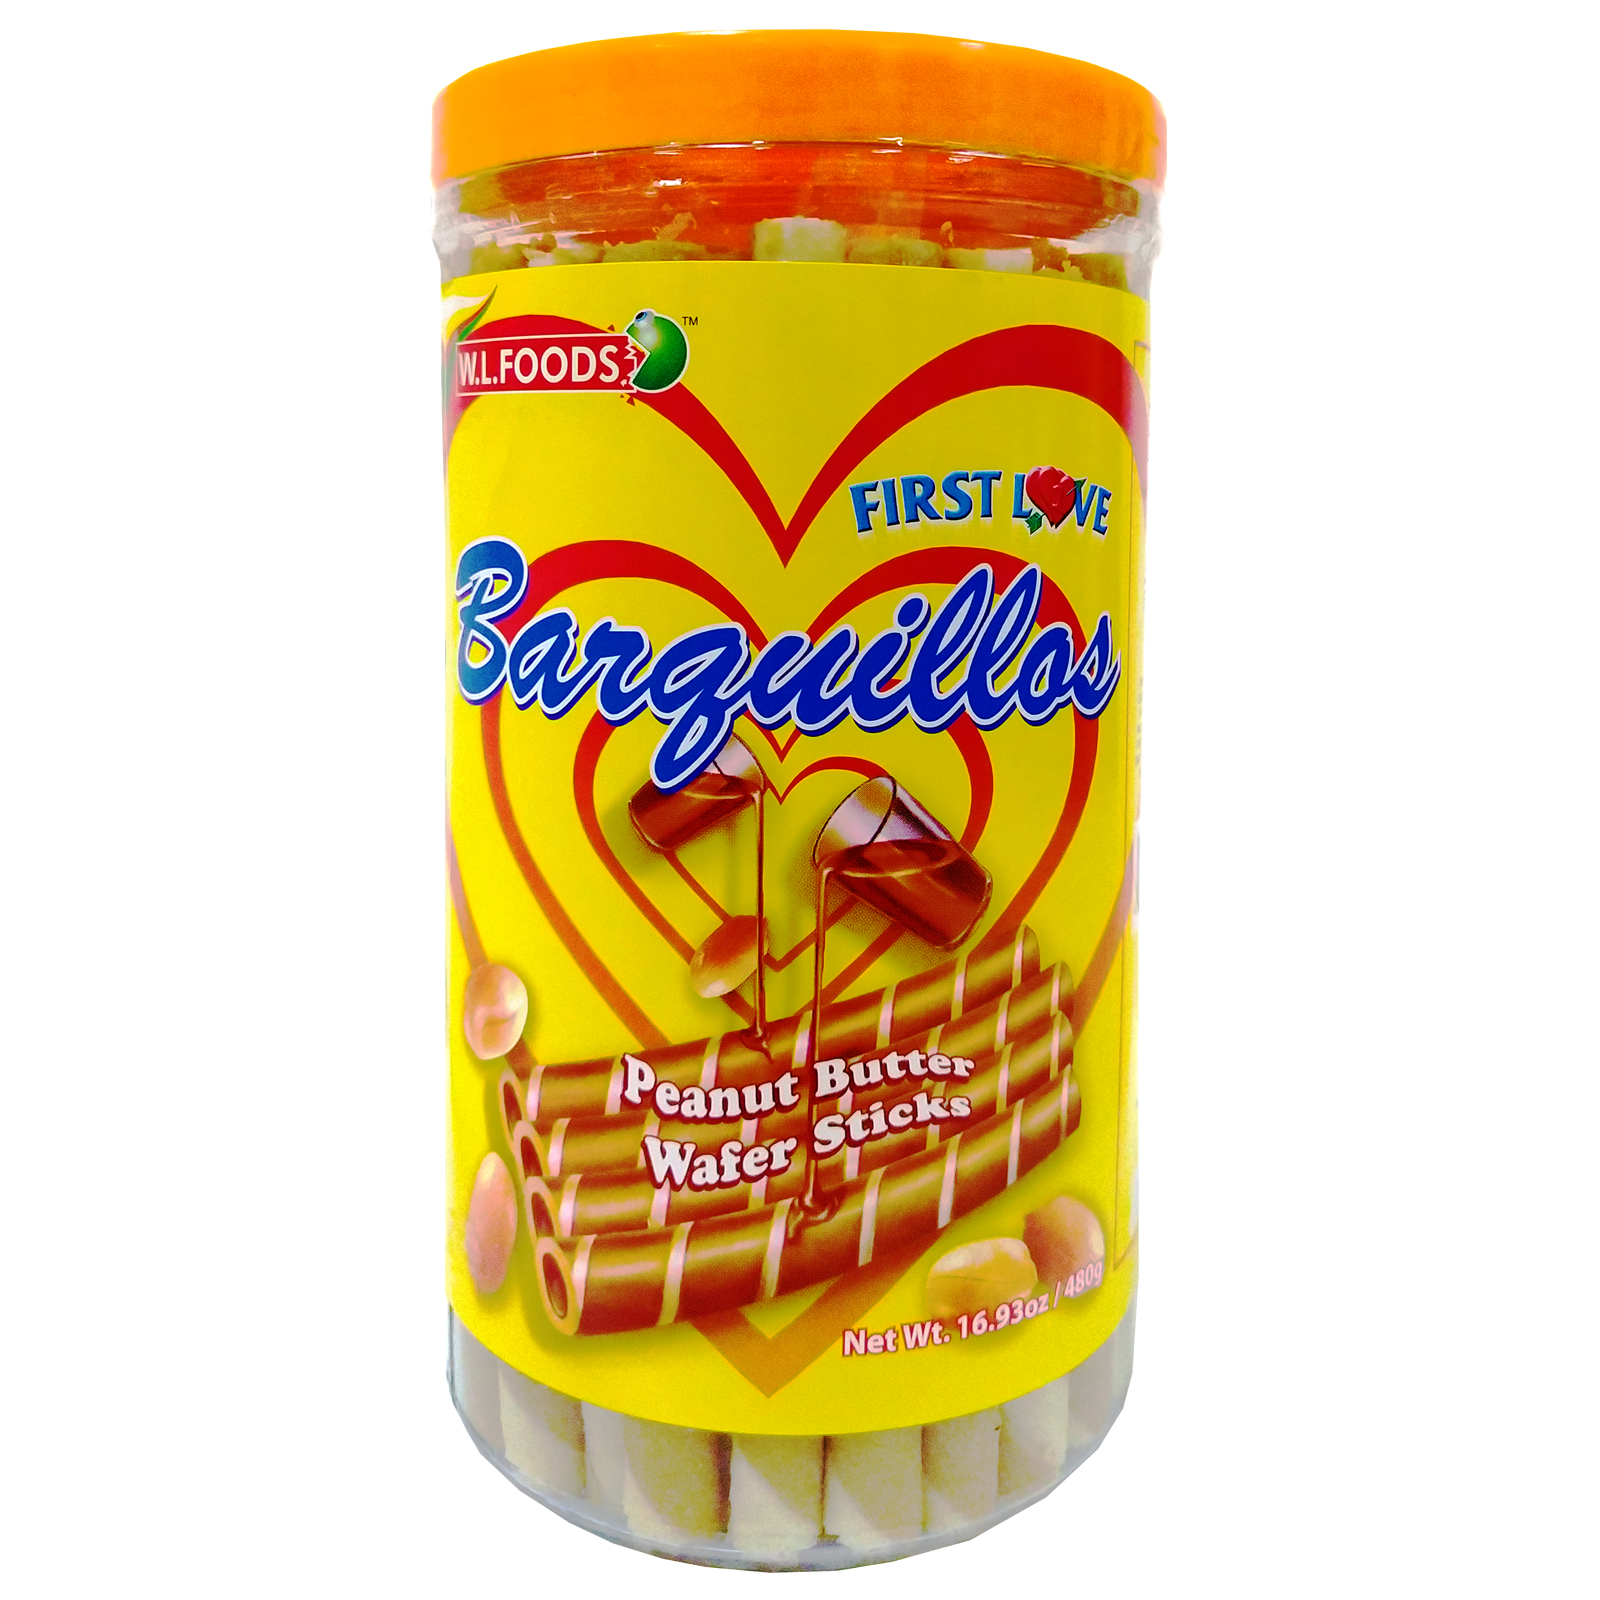 First Love Barquillos Peanut Butter Wafer Stick